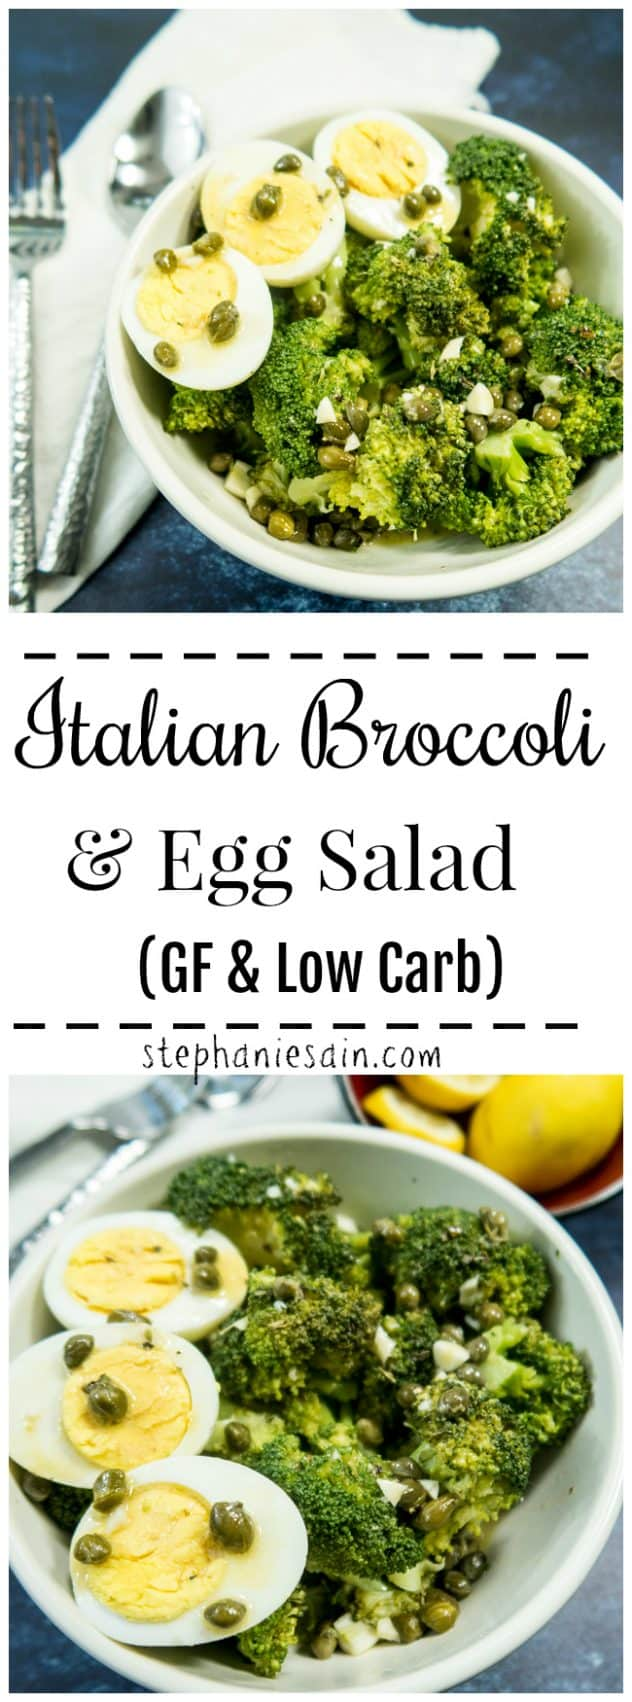 This Italian Broccoli & Egg Salad is super Easy to prepare and perfect for a tasty, healthy refreshing summer lunch or dinner. Only 2 ingredients in the salad and all topped with a lemony caper dressing! Gluten Free & Low Carb.